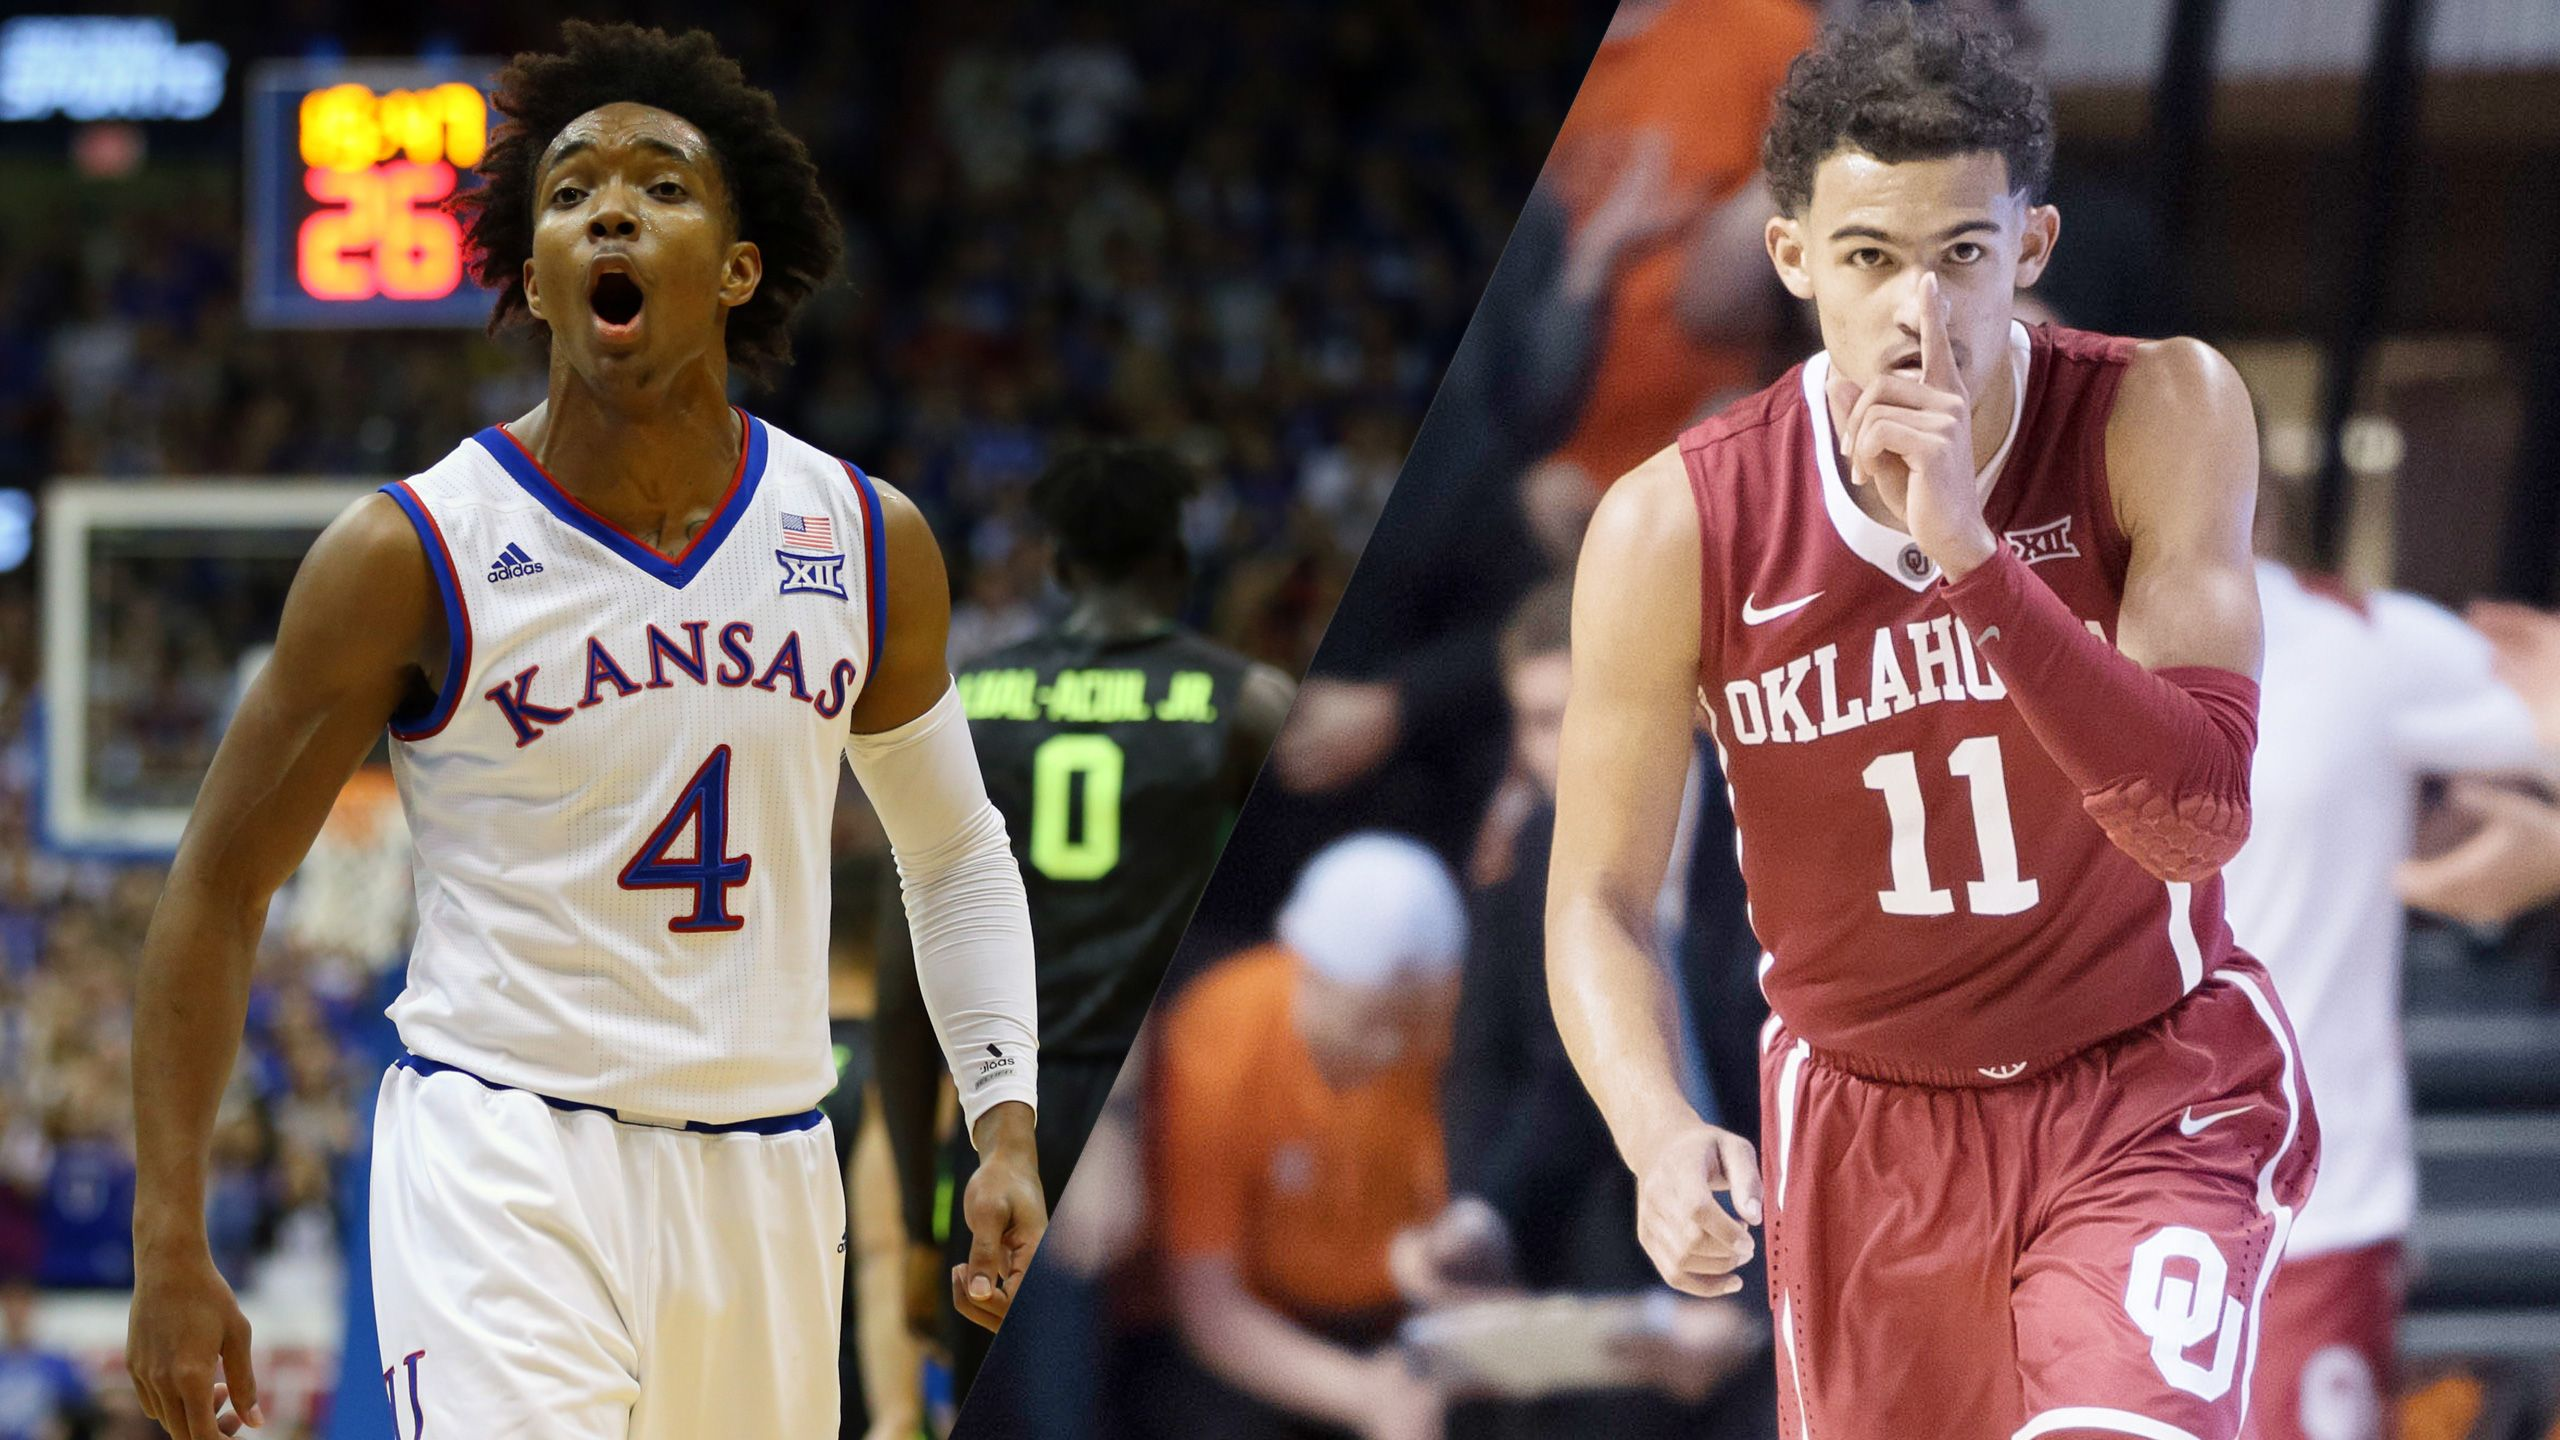 #5 Kansas vs. #12 Oklahoma (M Basketball) (re-air)